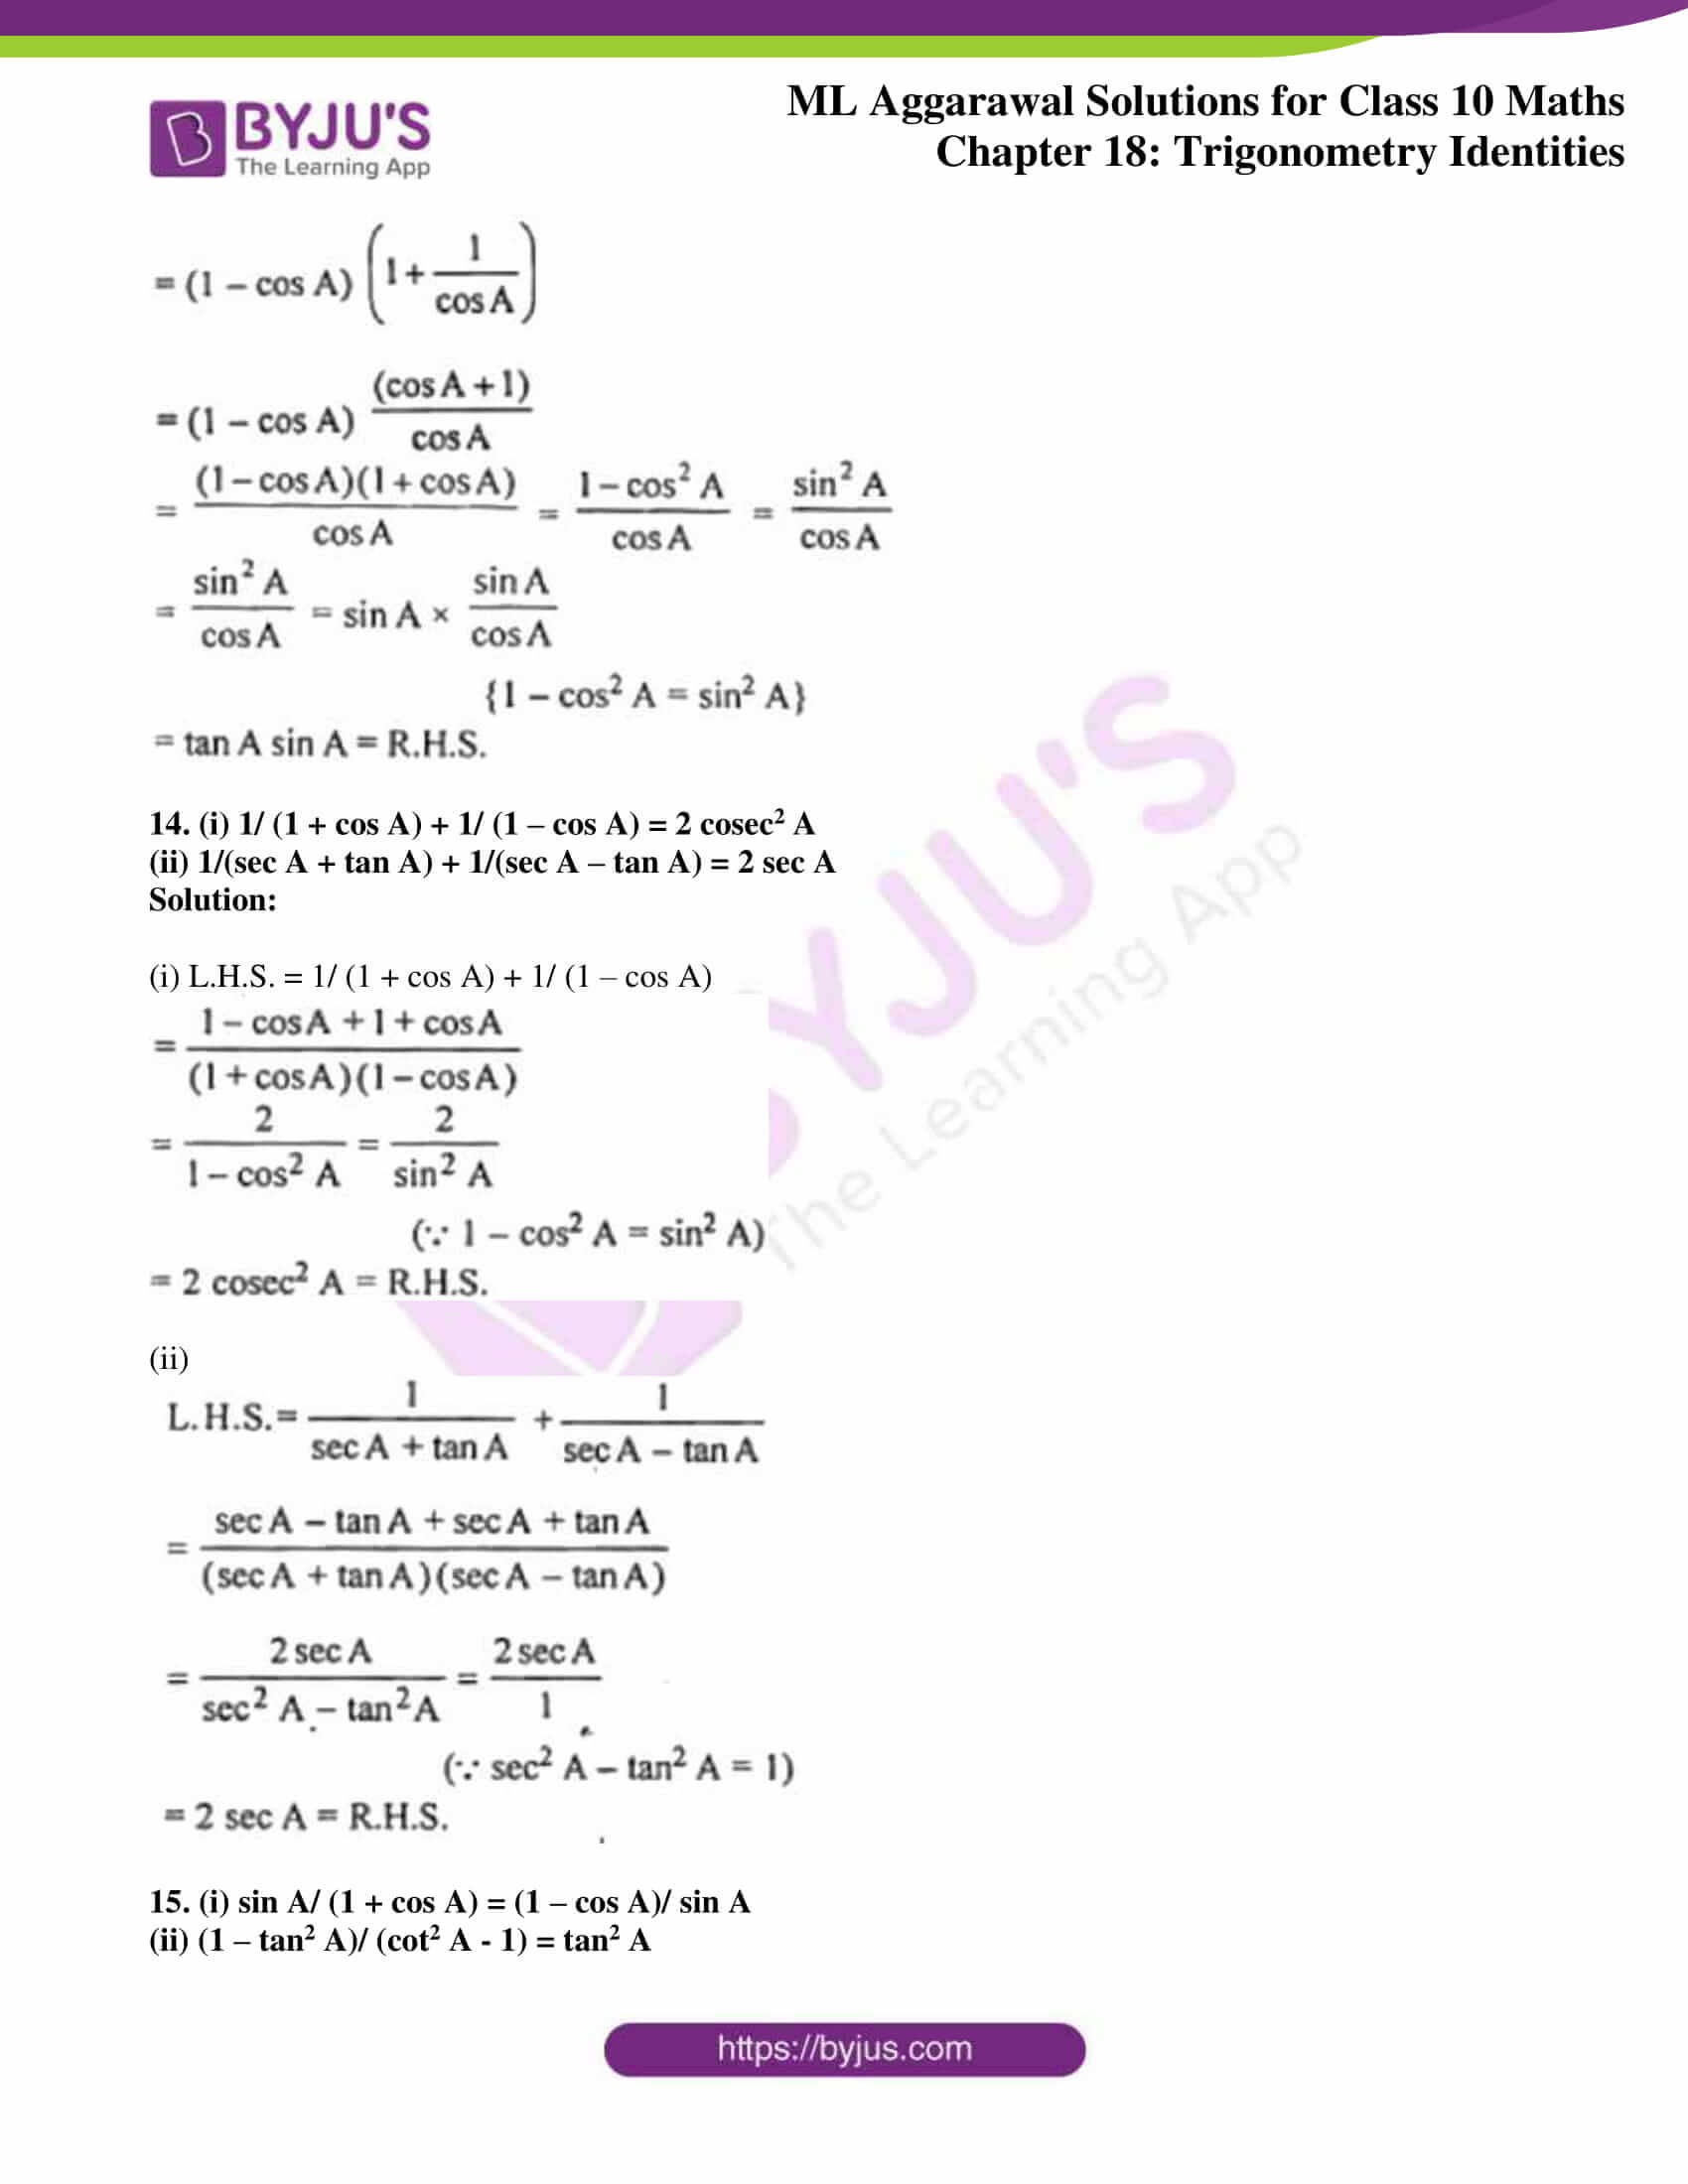 ml aggarwal solutions for class 10 maths chapter 18 08